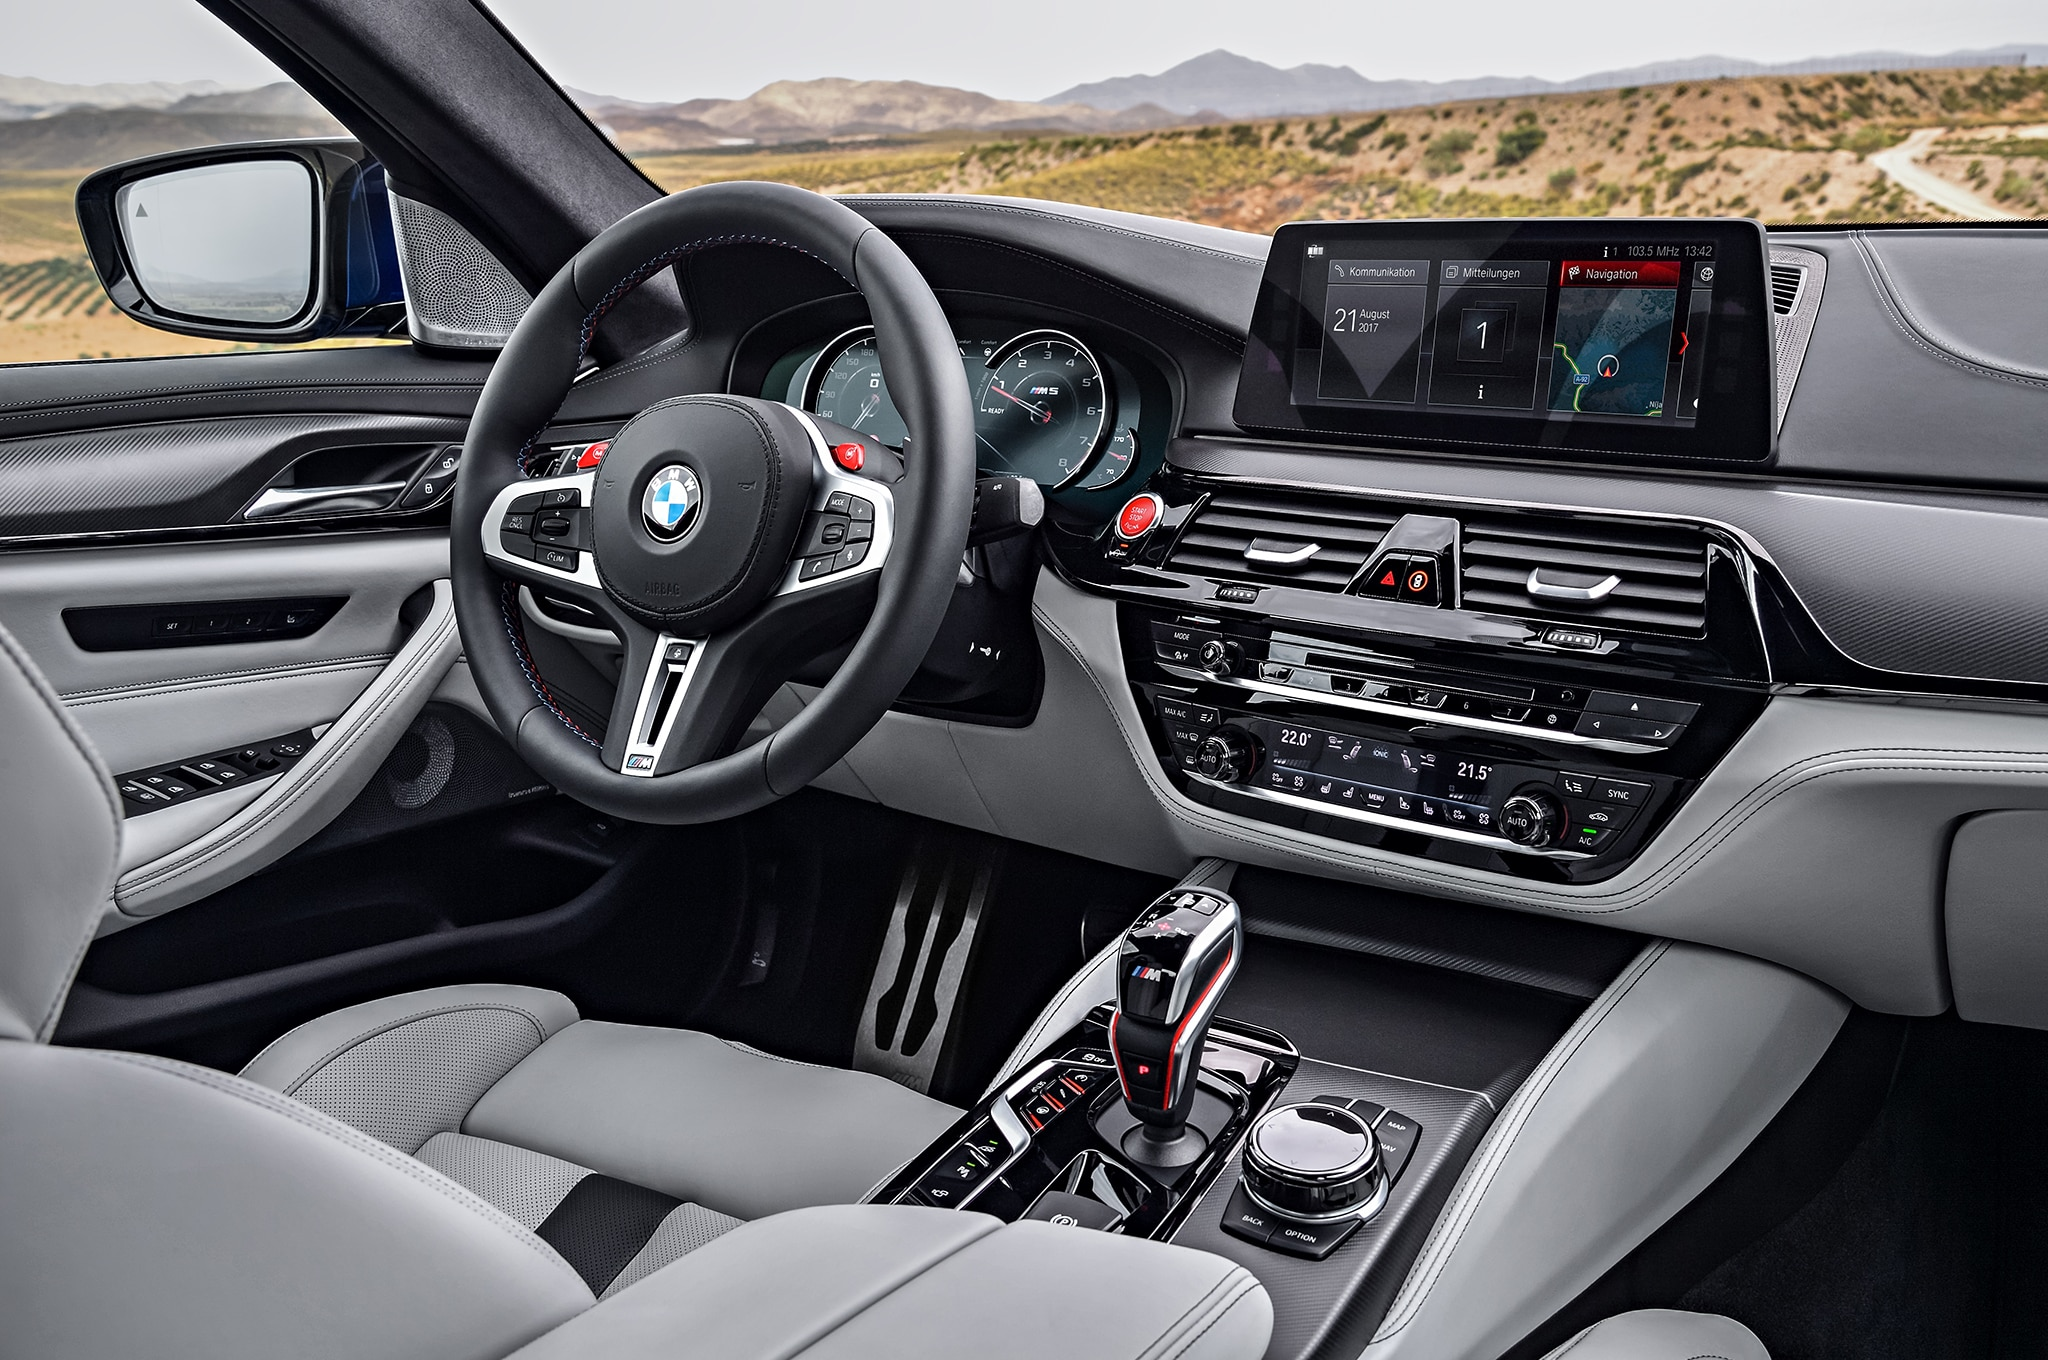 2018 bmw sedan.  sedan bucket seats are trimmed in merino leather with aluminum trim and other  carbonstructure materials used throughout the cabin bmw now offers a new shade  on 2018 bmw sedan